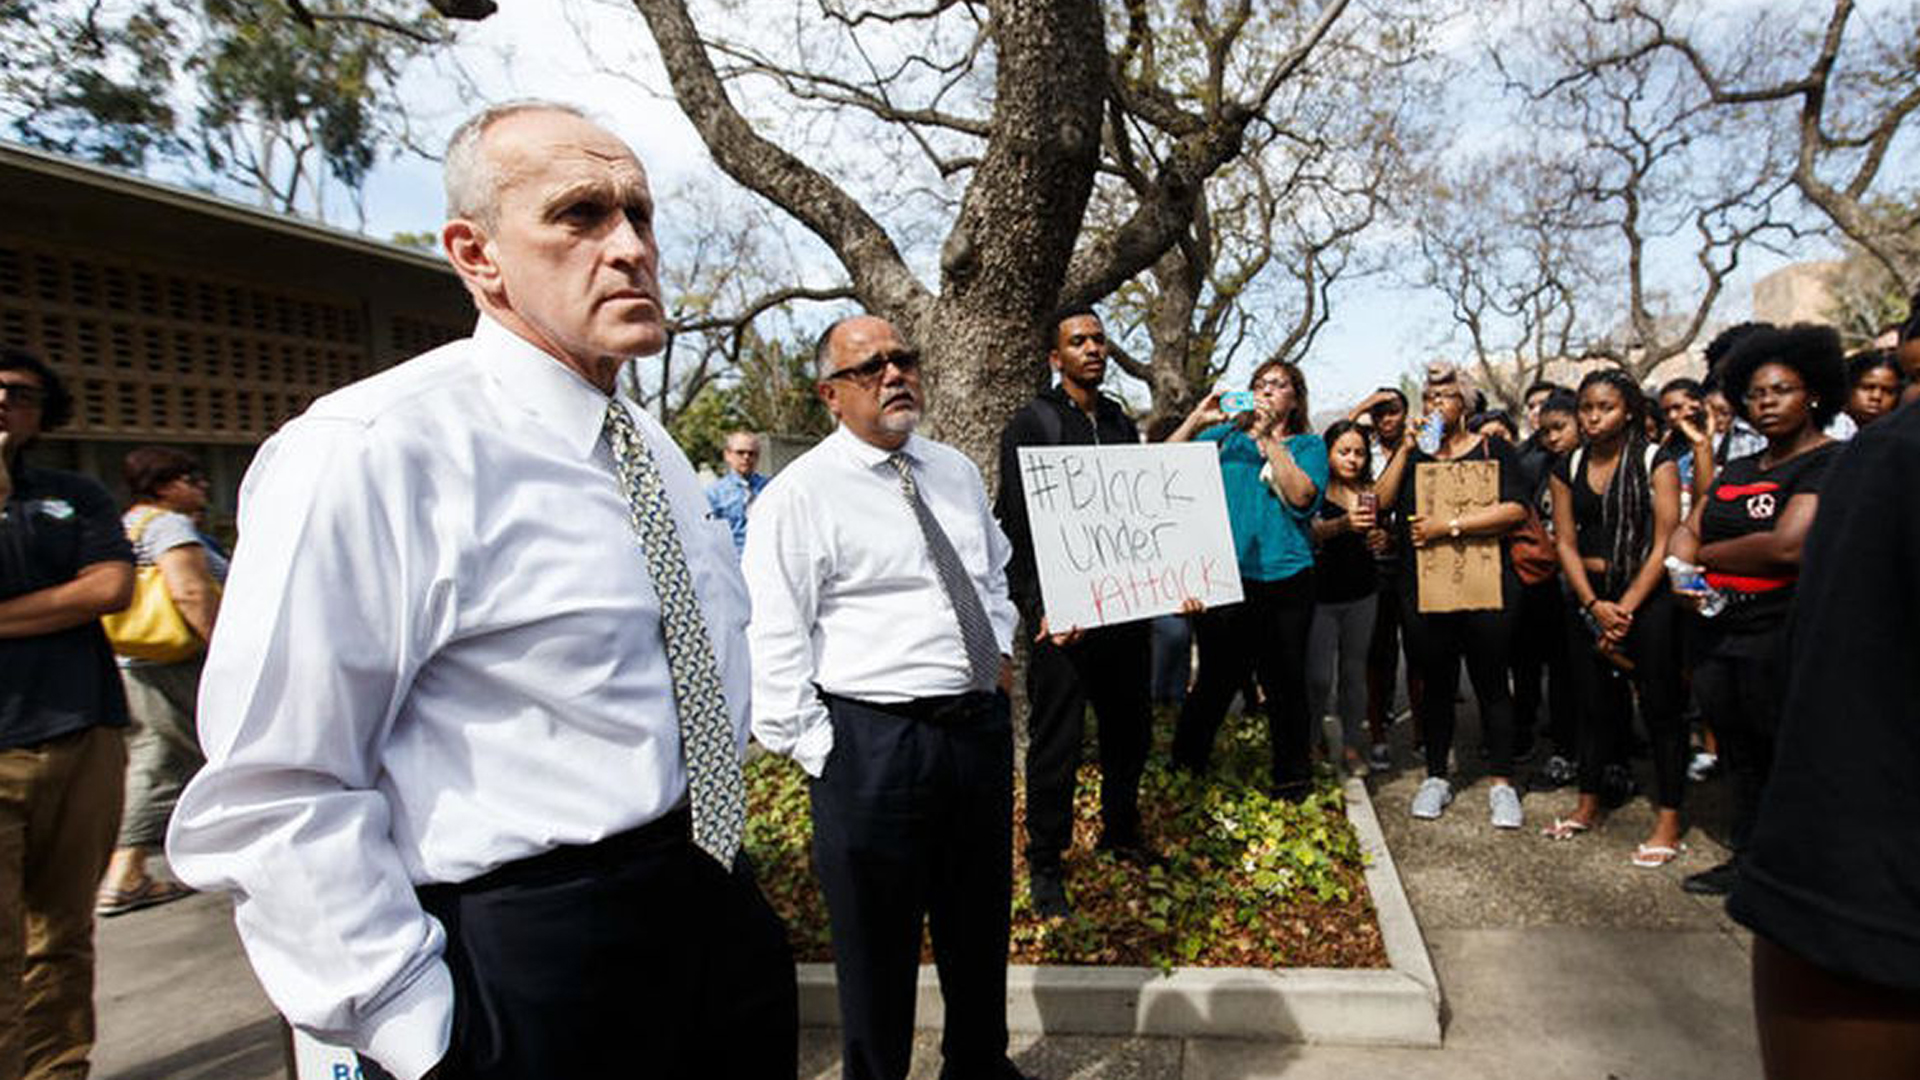 UC Riverside Chancellor Kim Wilcox, far left, is confronted by protesters against racial injustice and police brutality, including members of the Black Student Union. (Credit: Marcus Yam / Los Angeles Times)